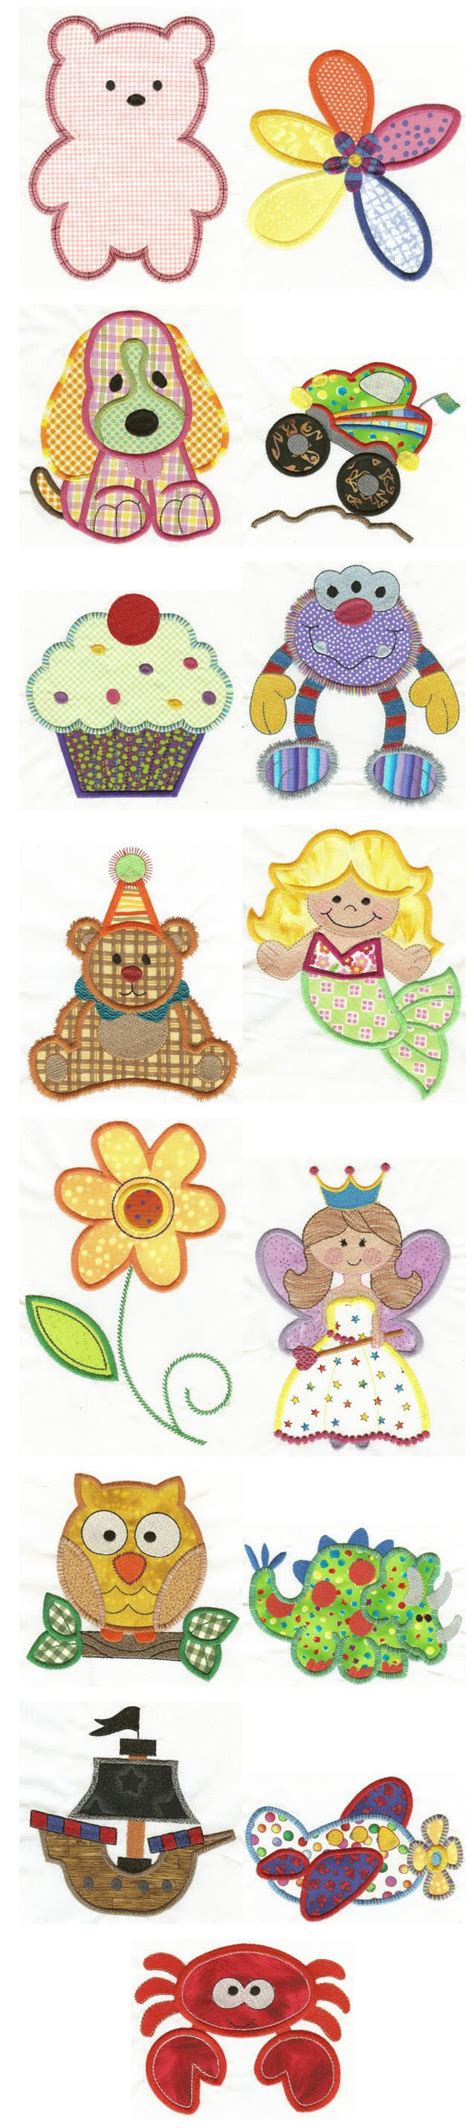 embroidery design by juju 208 best images about juju embroidery designs on pinterest